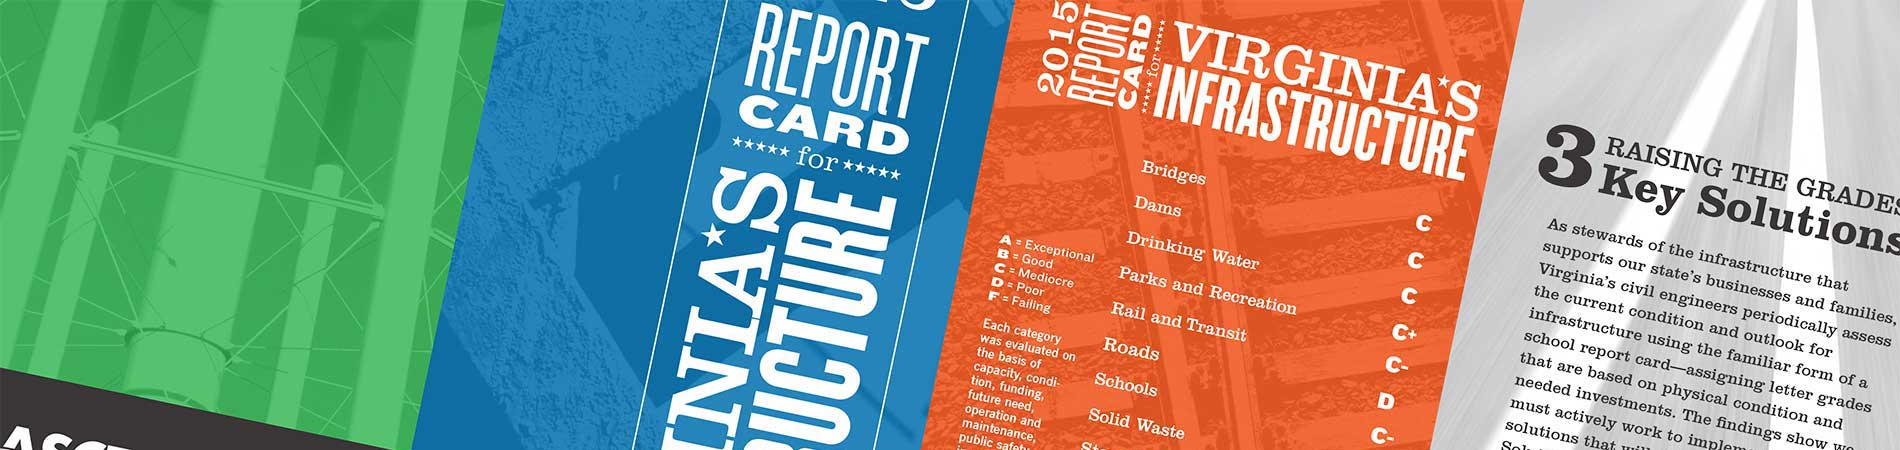 2015 ASCE Virginia Infrastructure Report Card